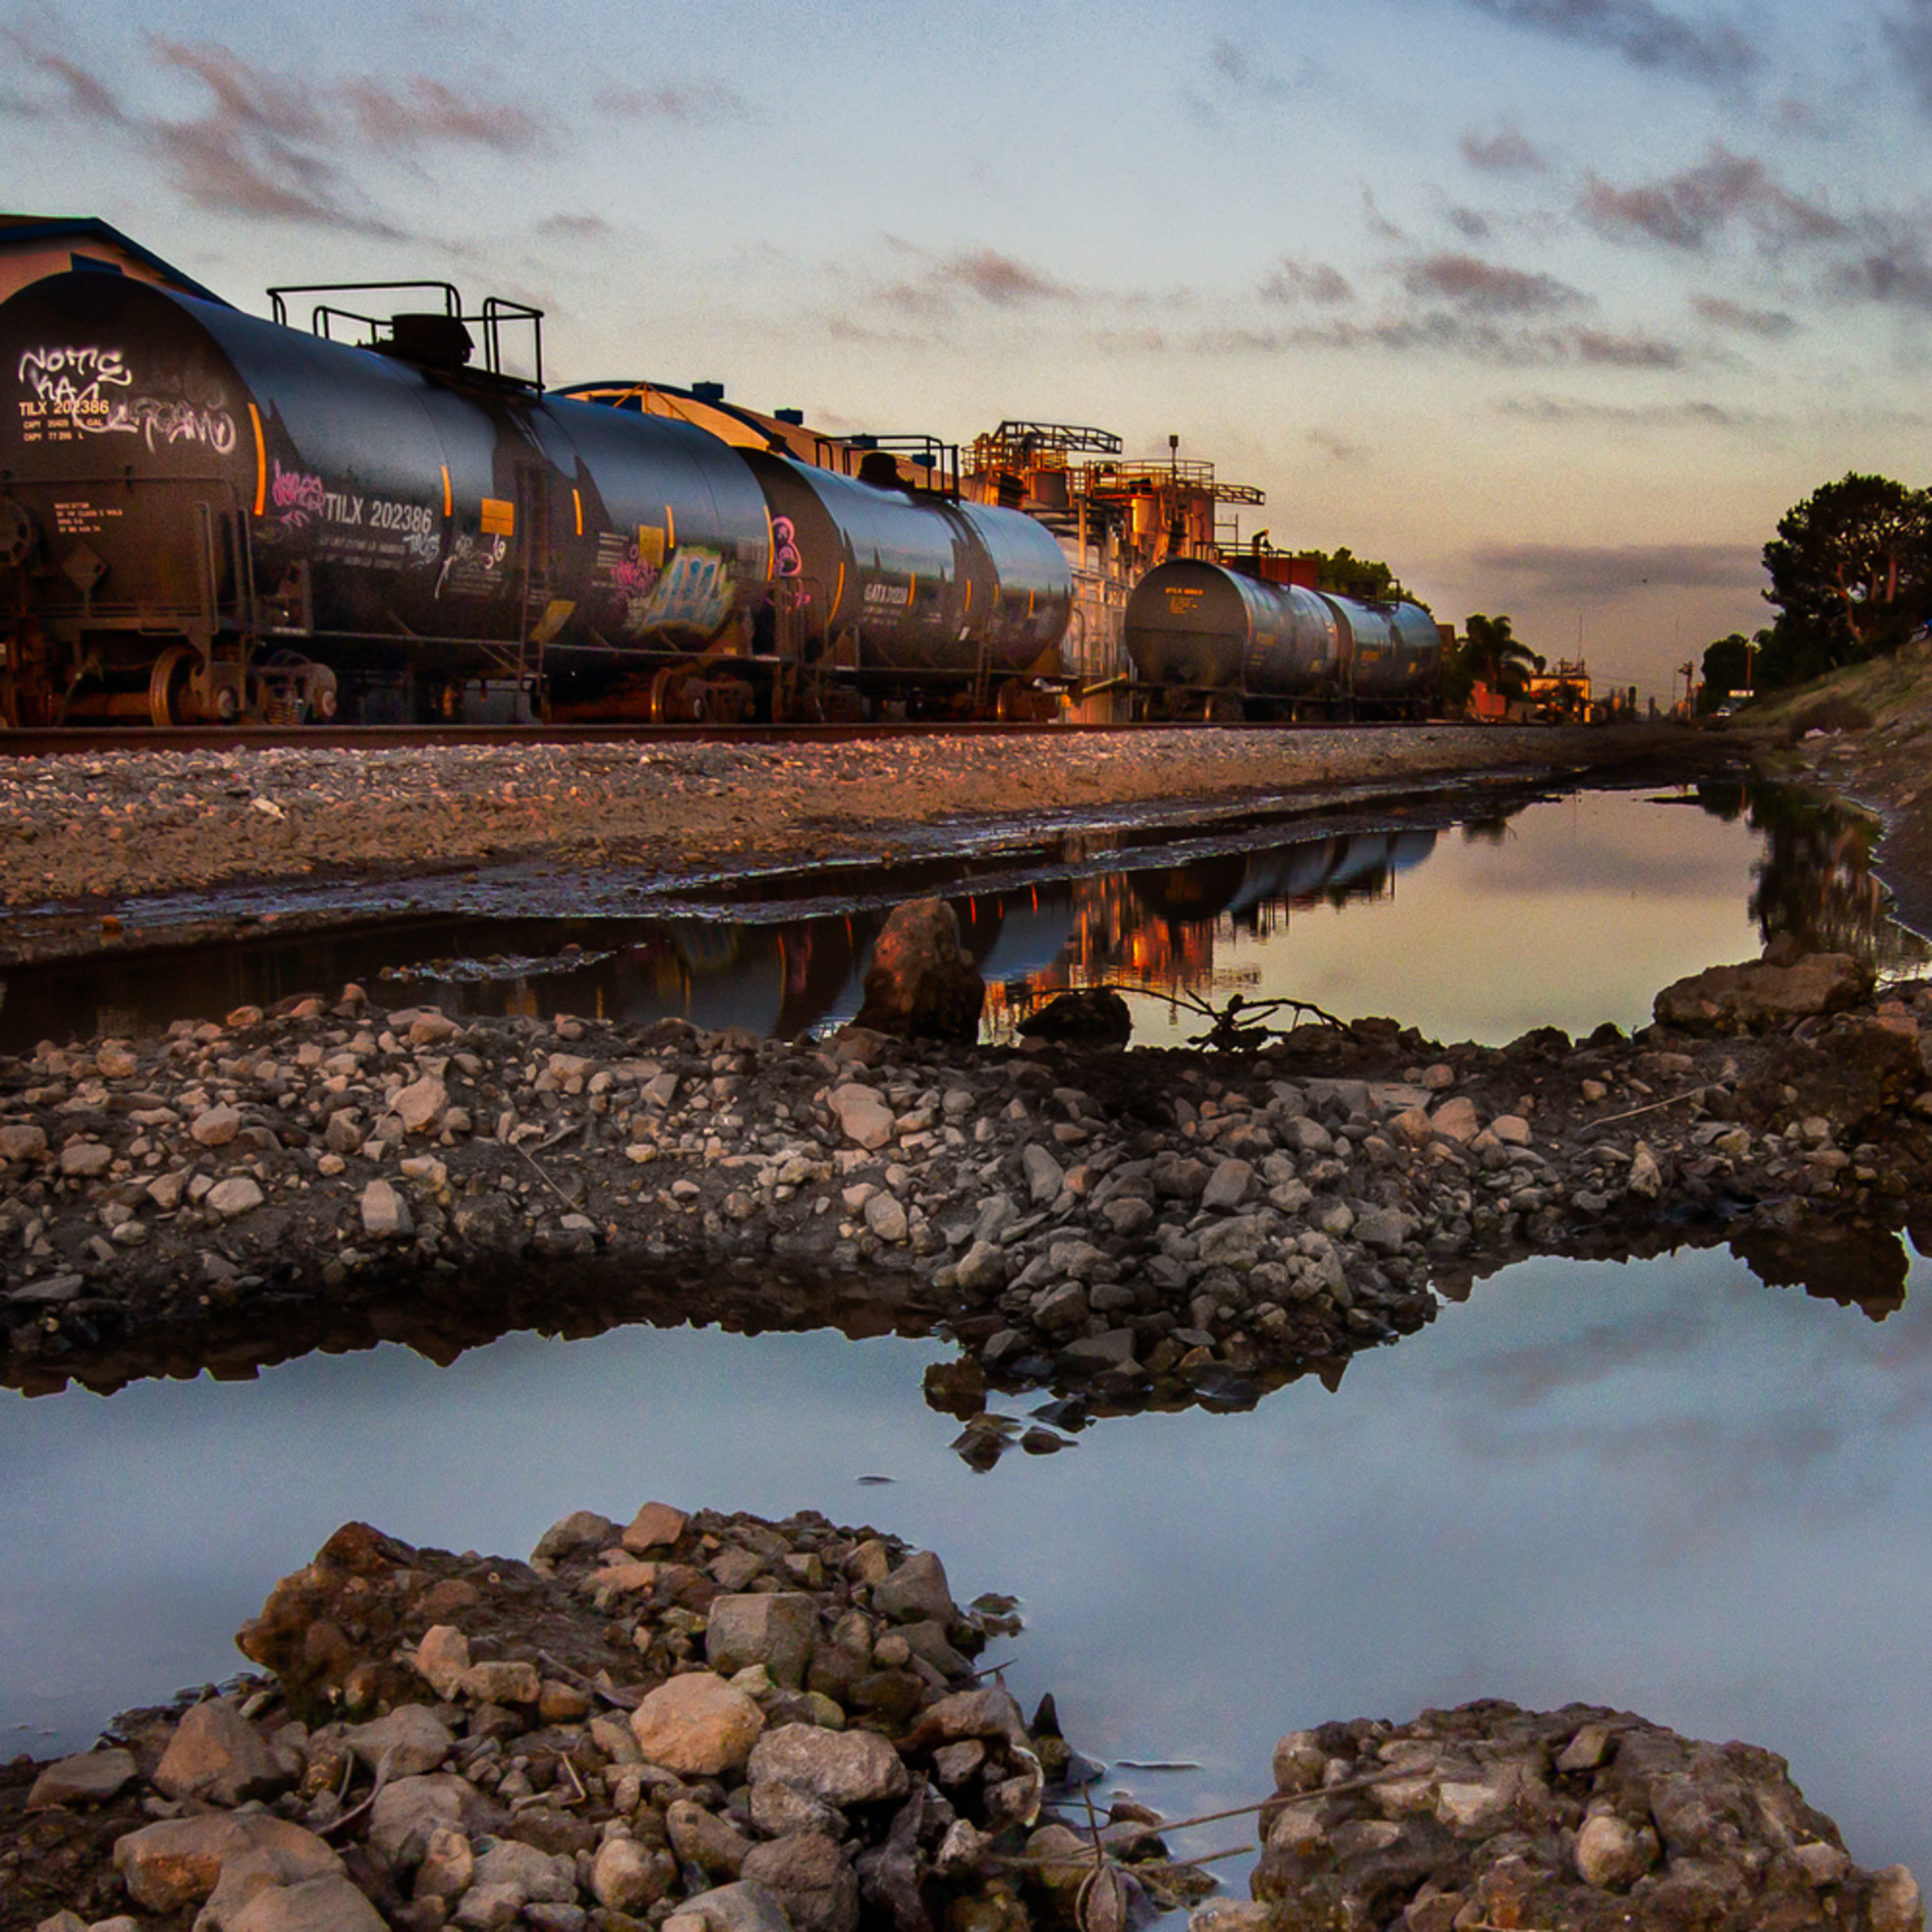 Tank cars in the morning luzy1z